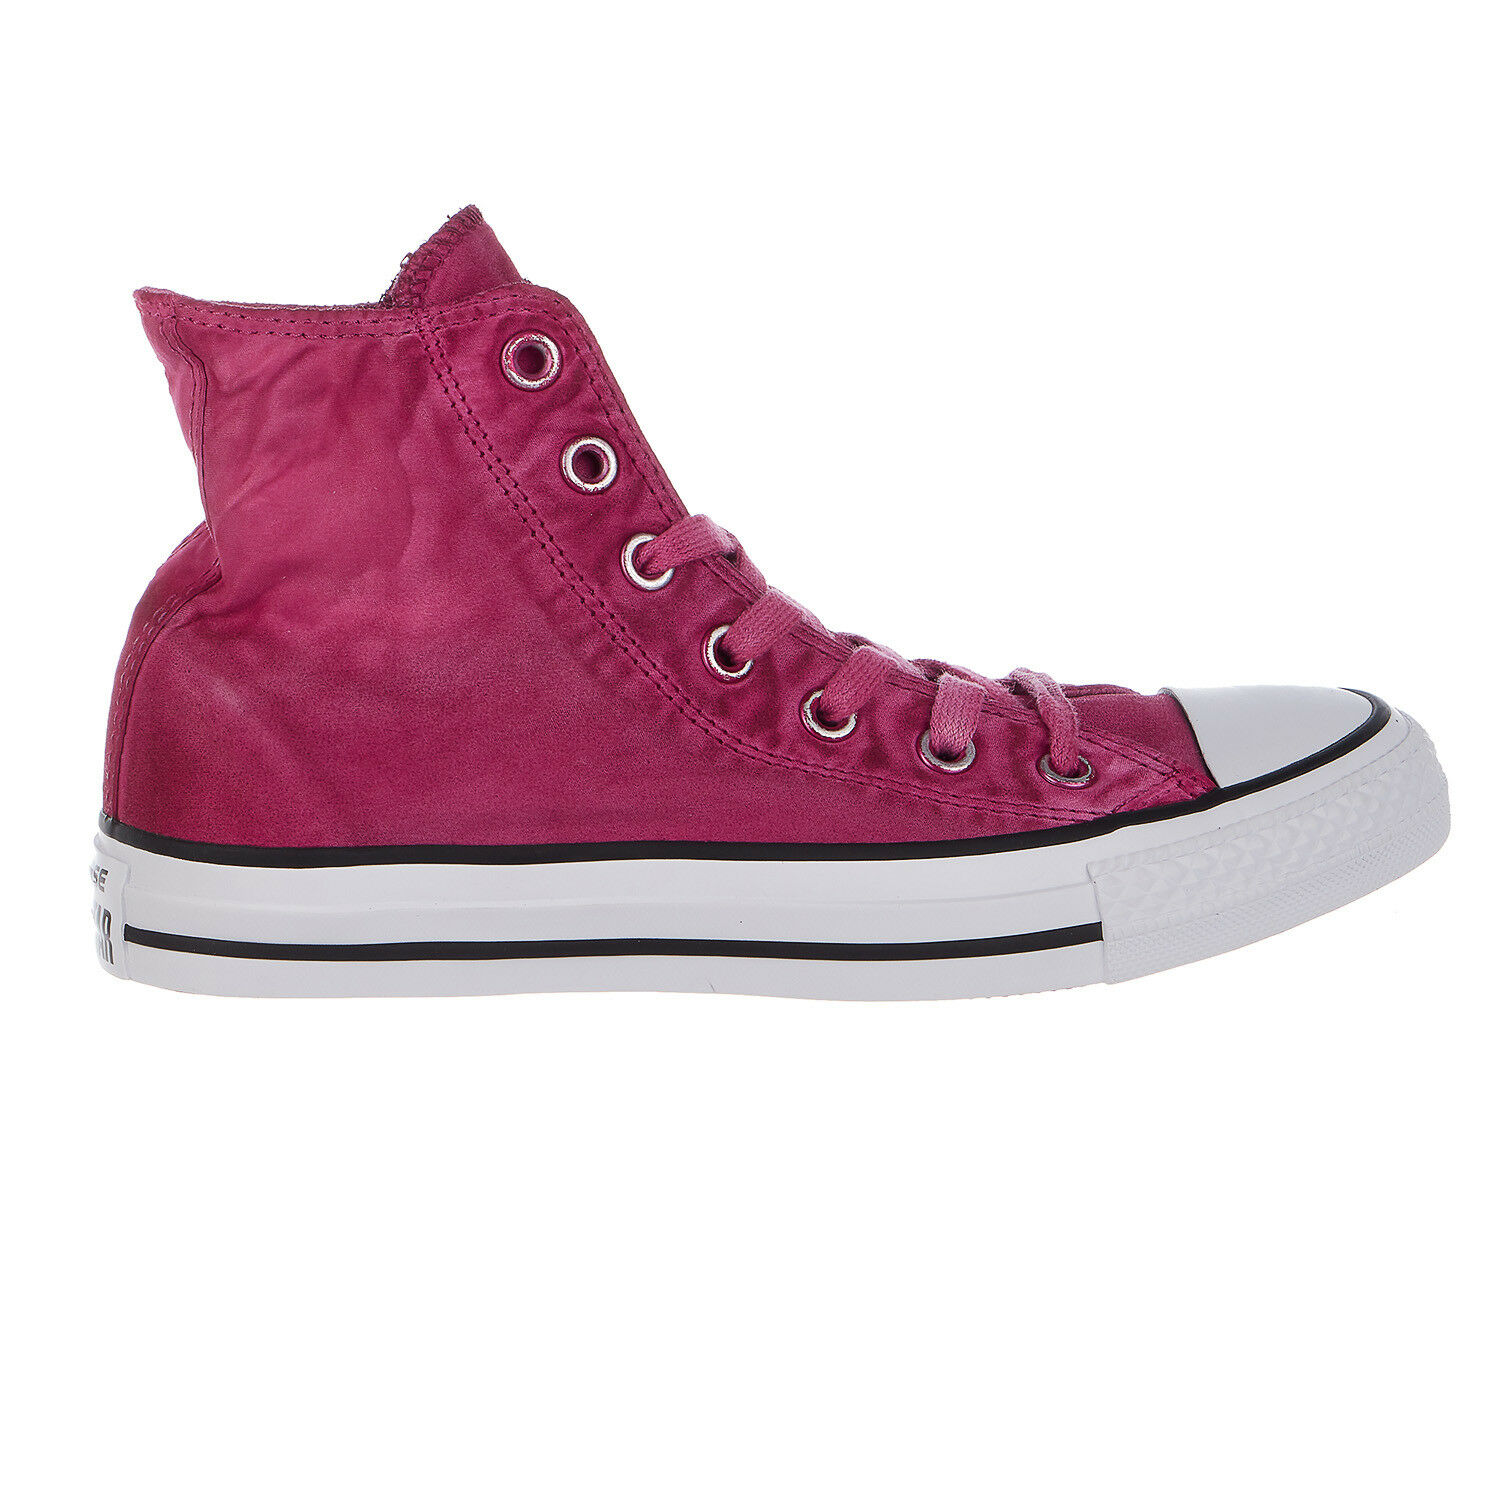 Converse Chuck Taylor All Star Hi Top Textile Trainers  - Damenschuhe